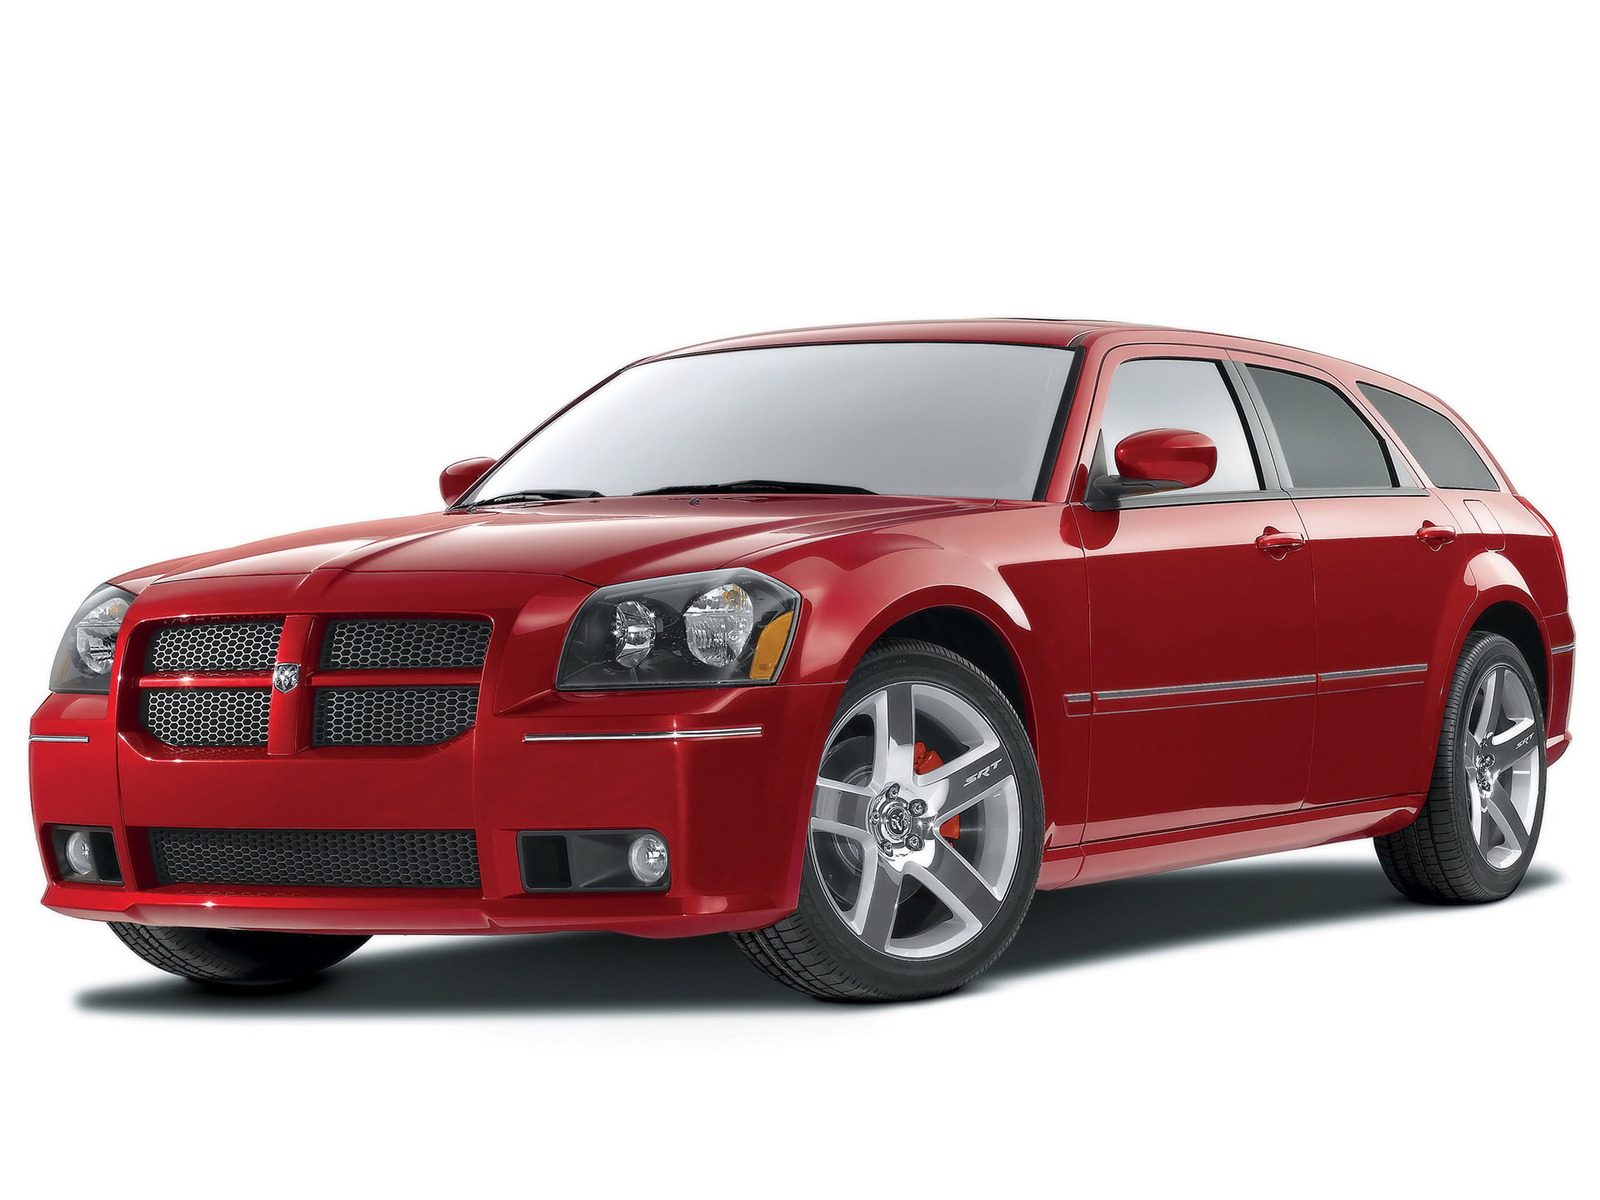 Picture of 2006 Dodge Magnum R/T